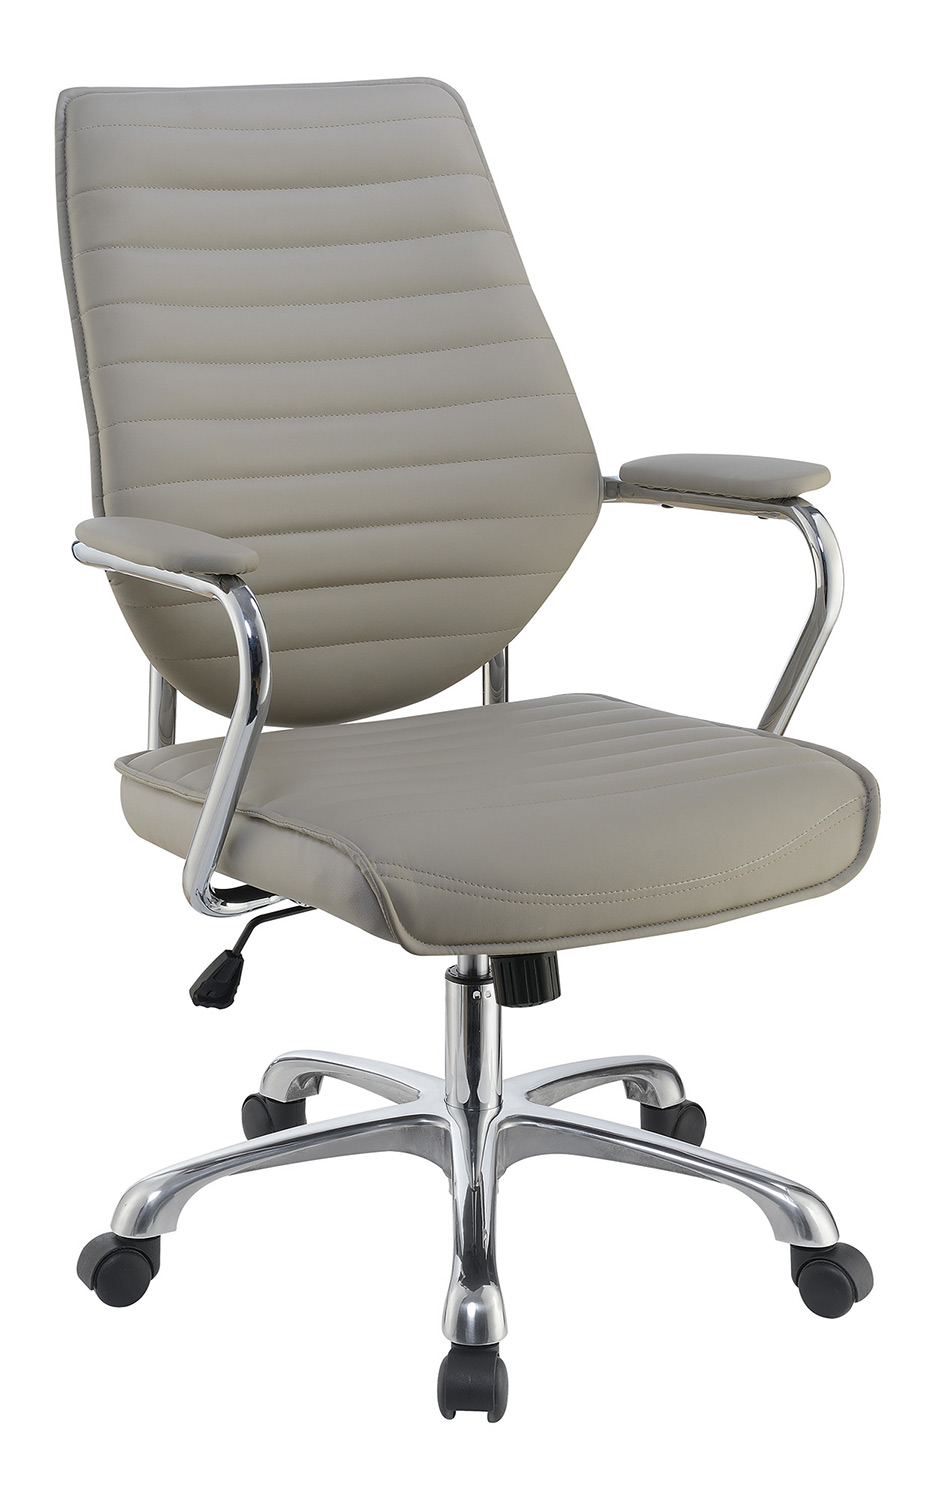 Coaster 801328 Office Chair - Taupe/Aluminum